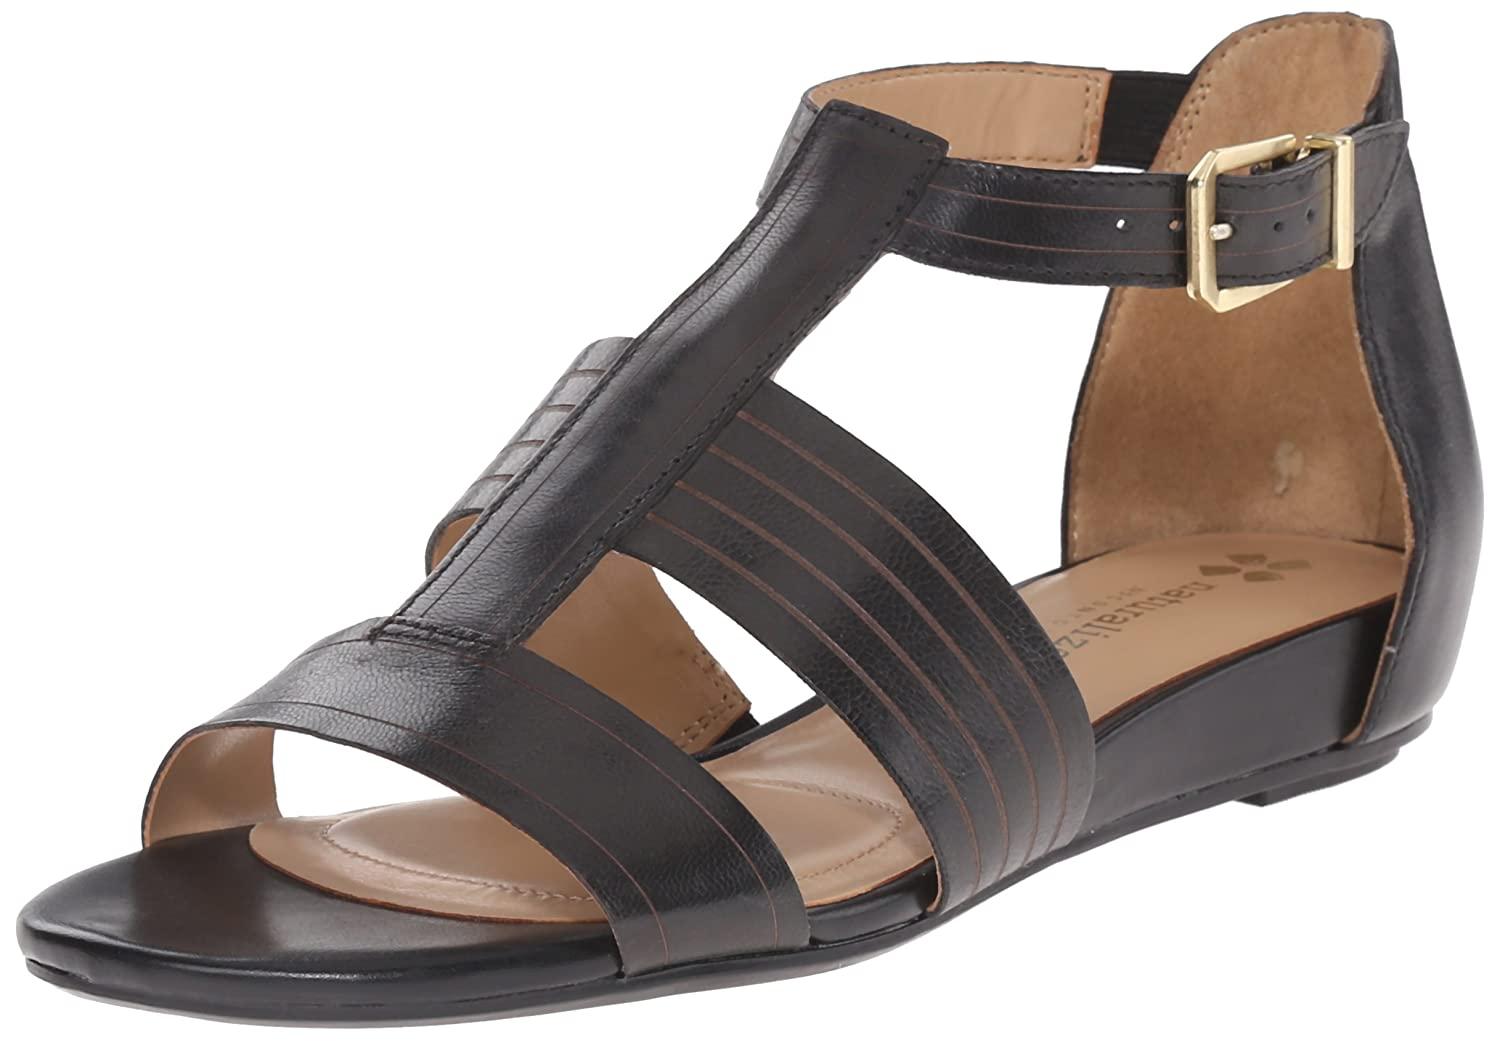 5226b370ecf5 Naturalizer Women s longing Gladiator Sandal